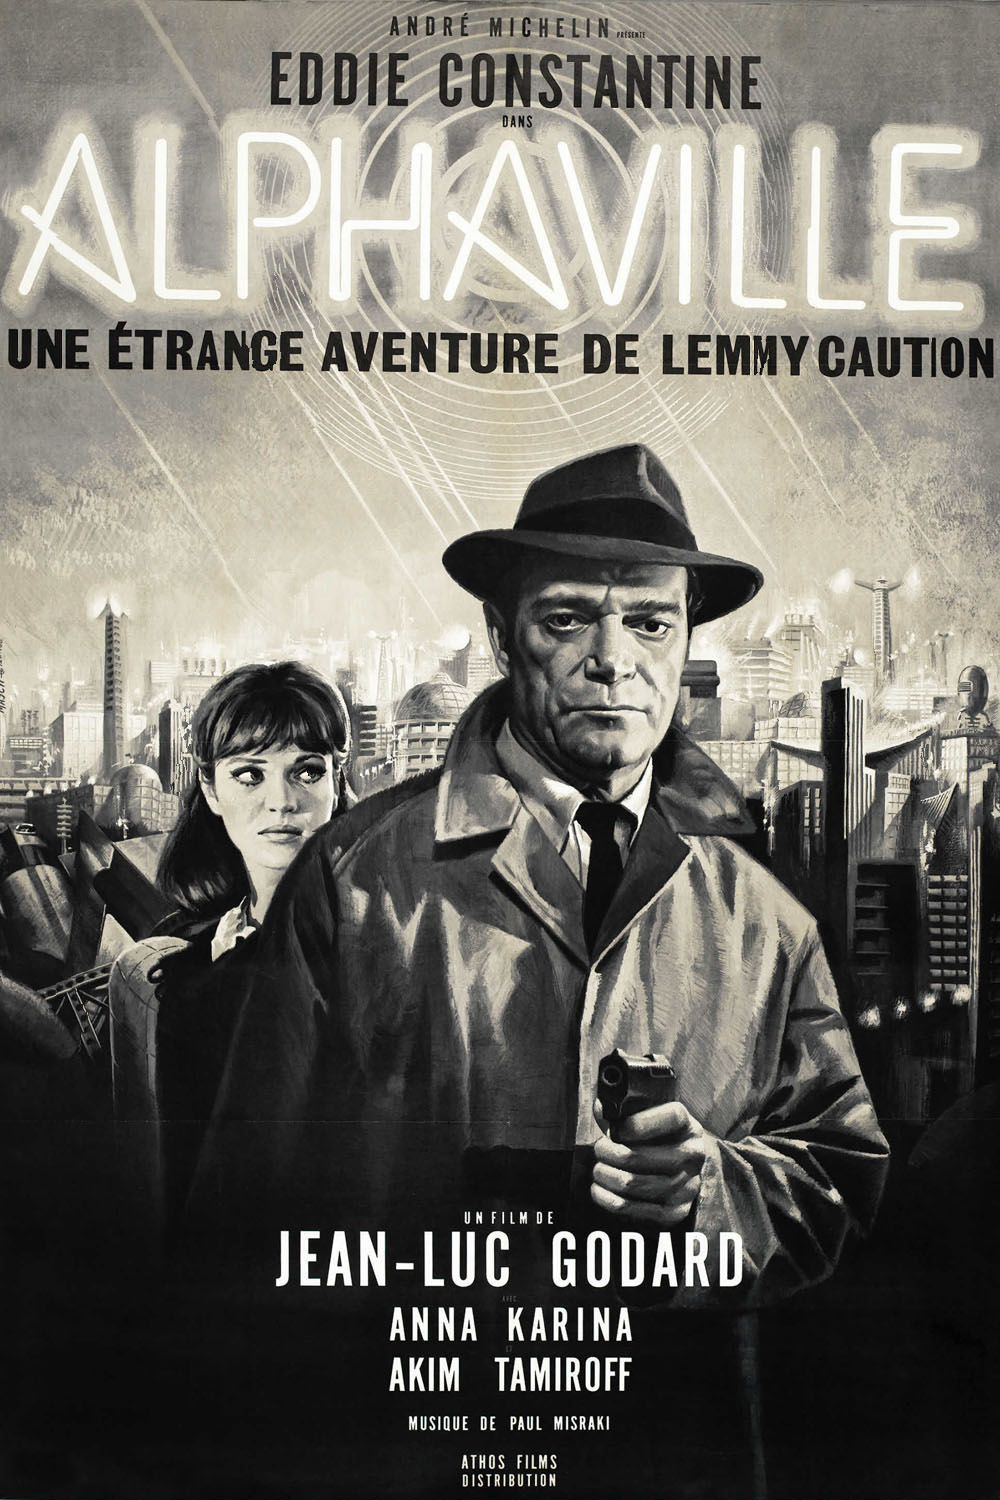 10 Film Posters From French New Wave Cinema Inspirationfeed